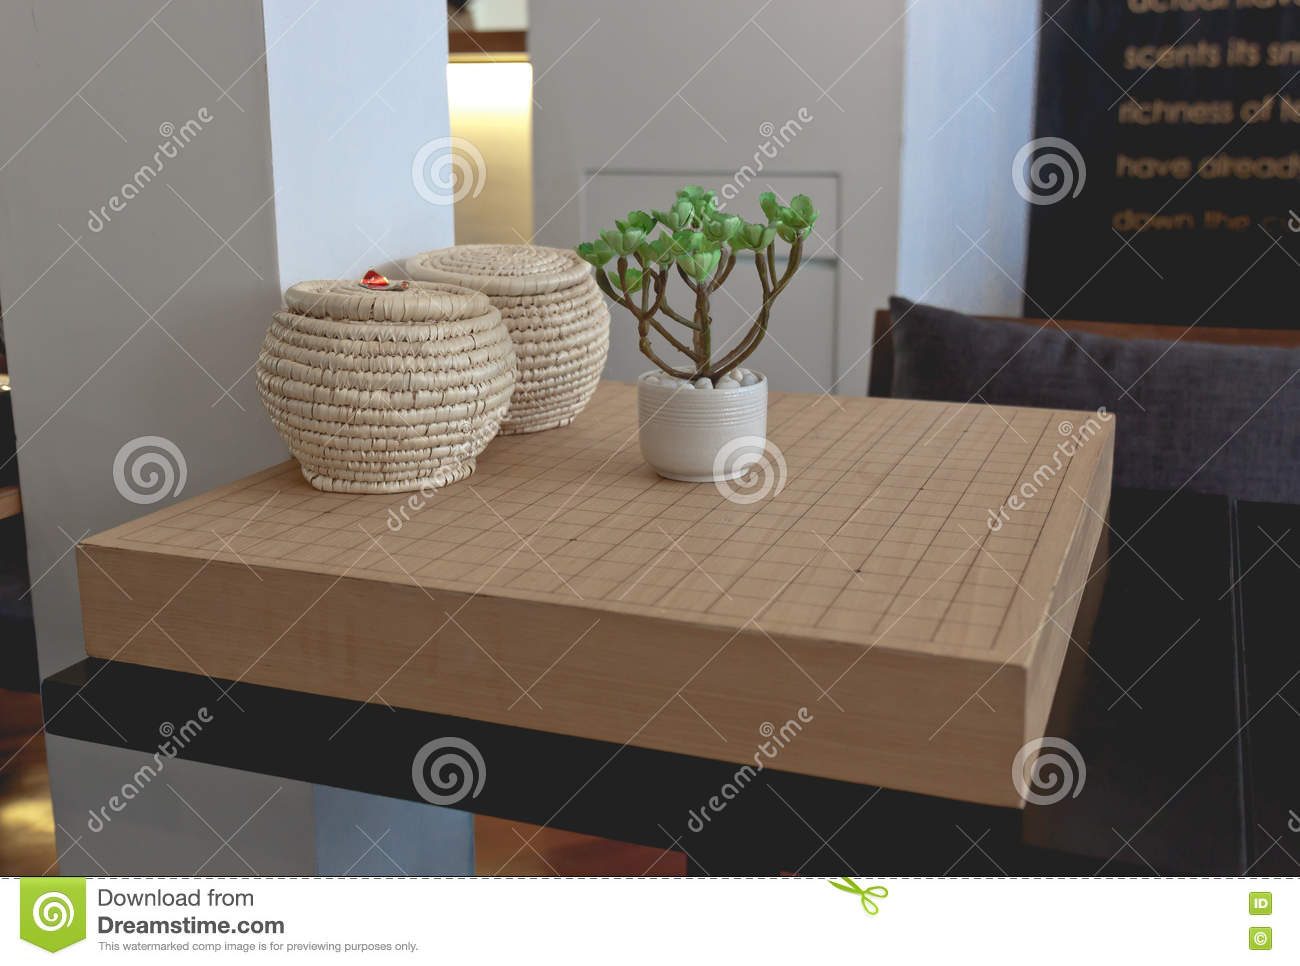 go board game on a table stock photo - image: 70716424